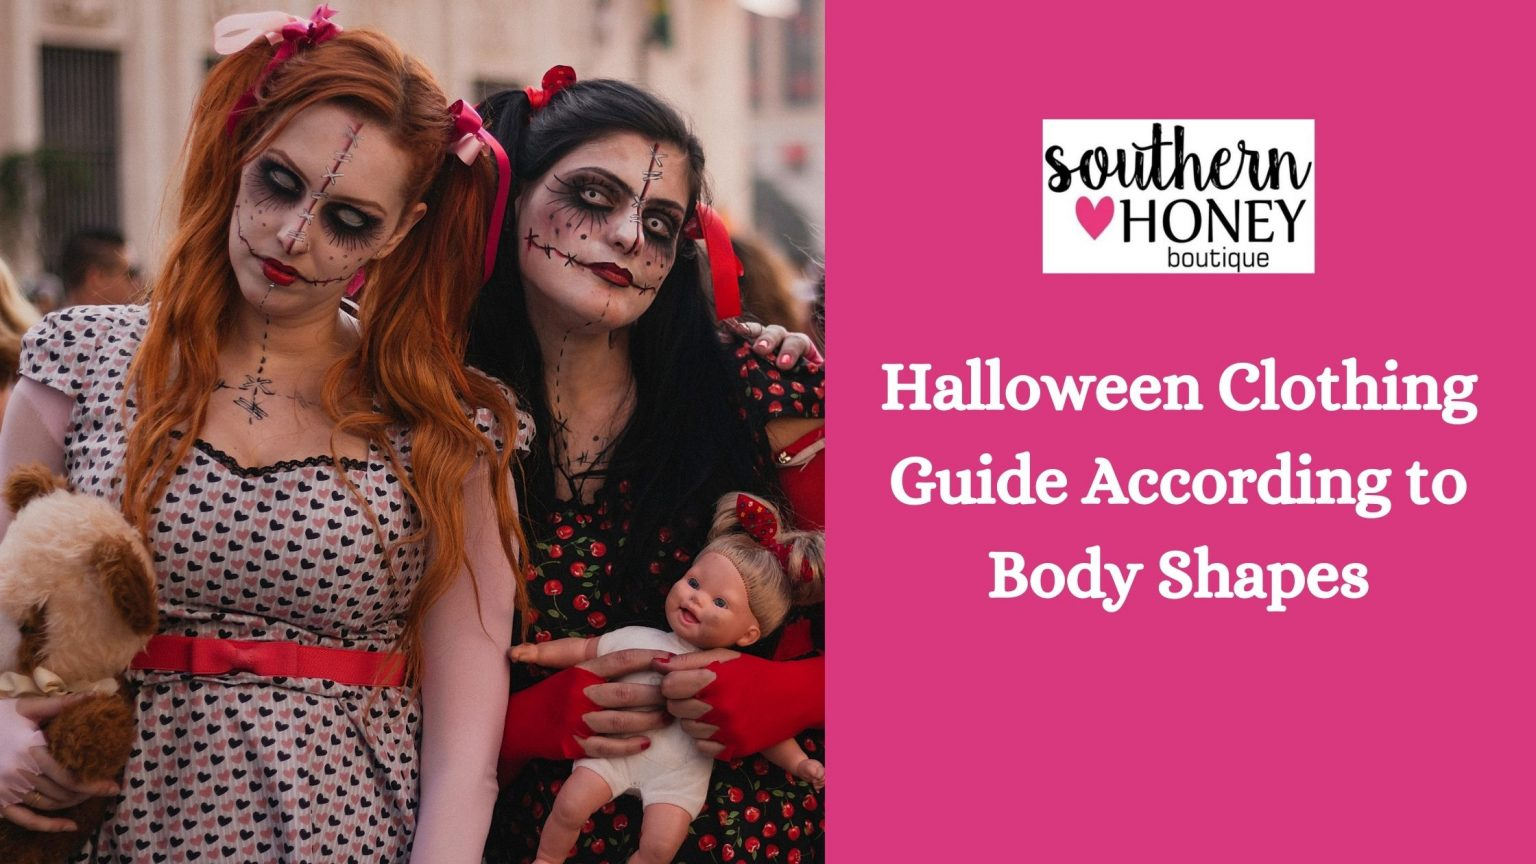 Halloween Clothing Guide According to Body Shapes